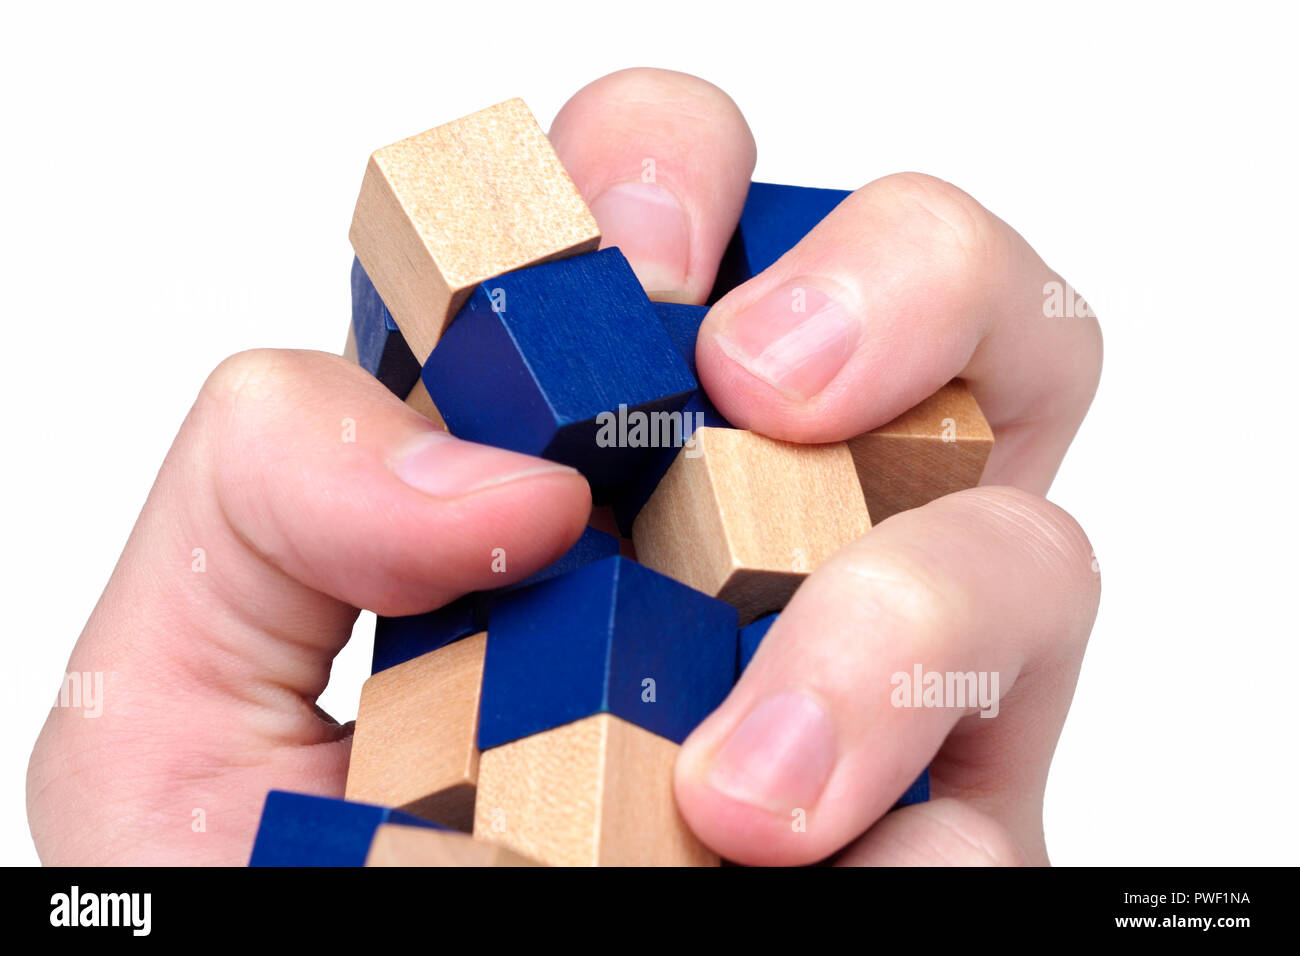 Hand violently squeezing, crushing and knocking down a structure made of wooden blocks - Stock Image